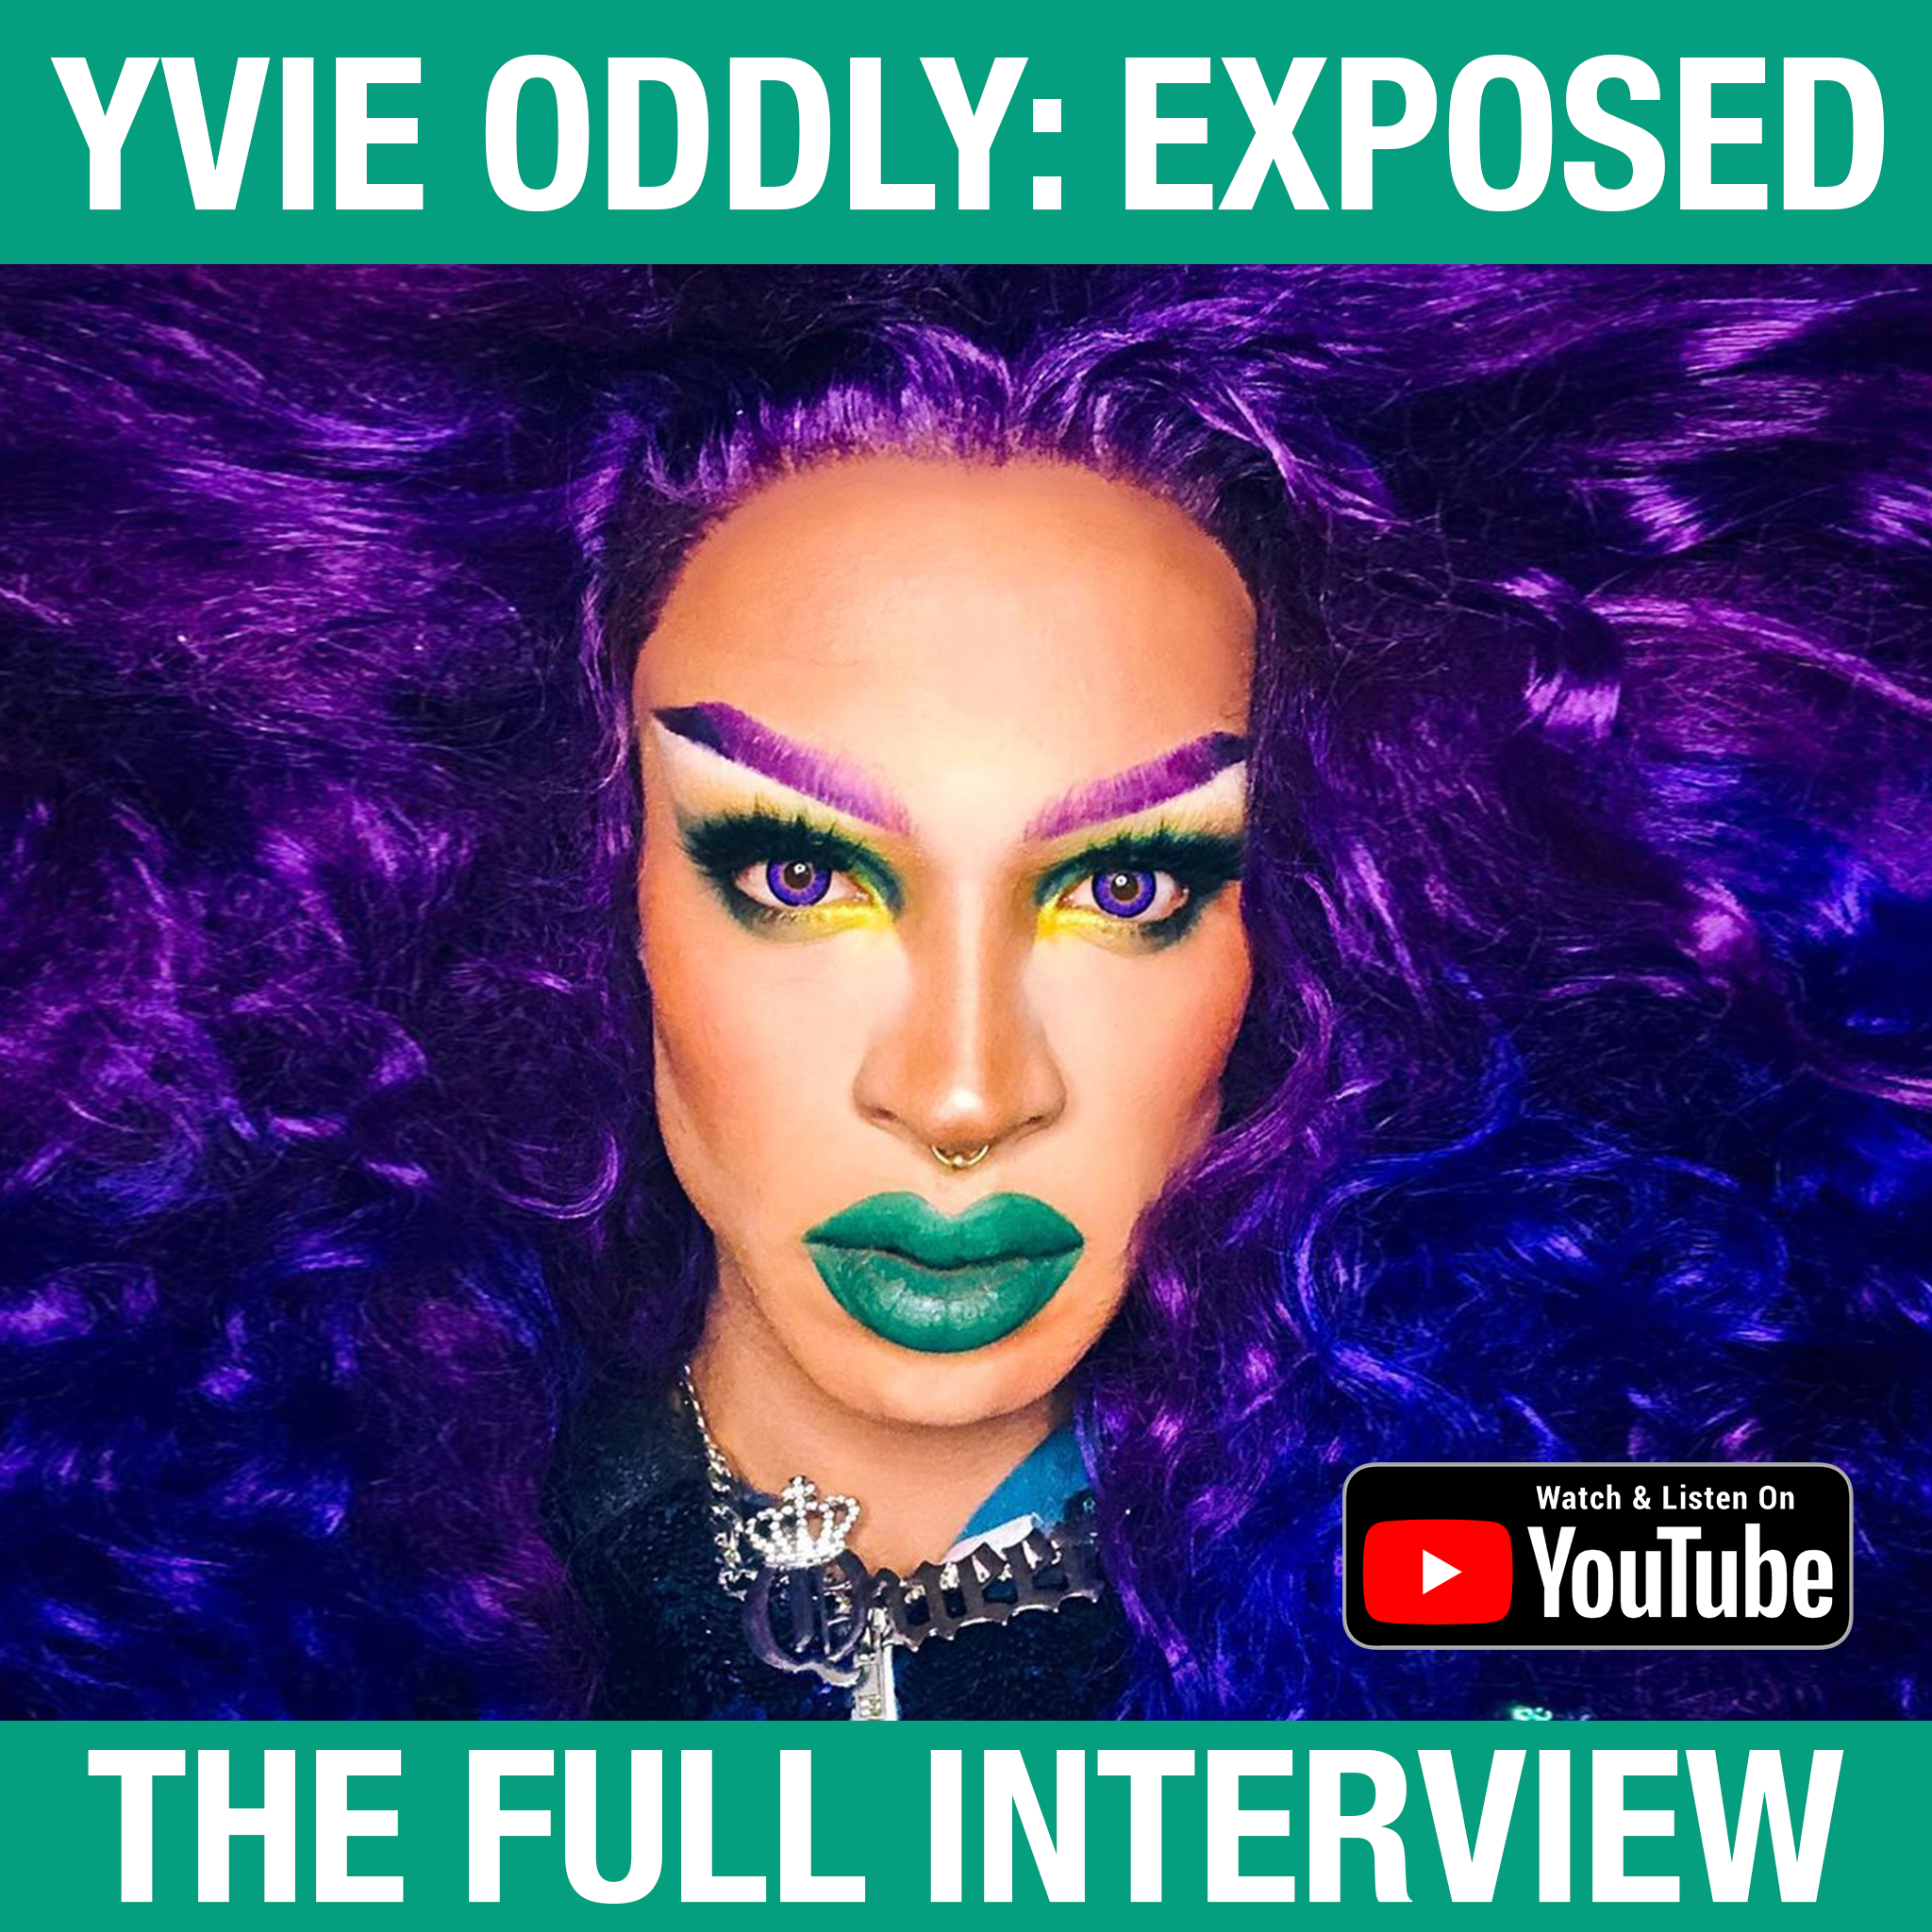 S2E1: Yvie Oddly: Exposed (The Full Interview)